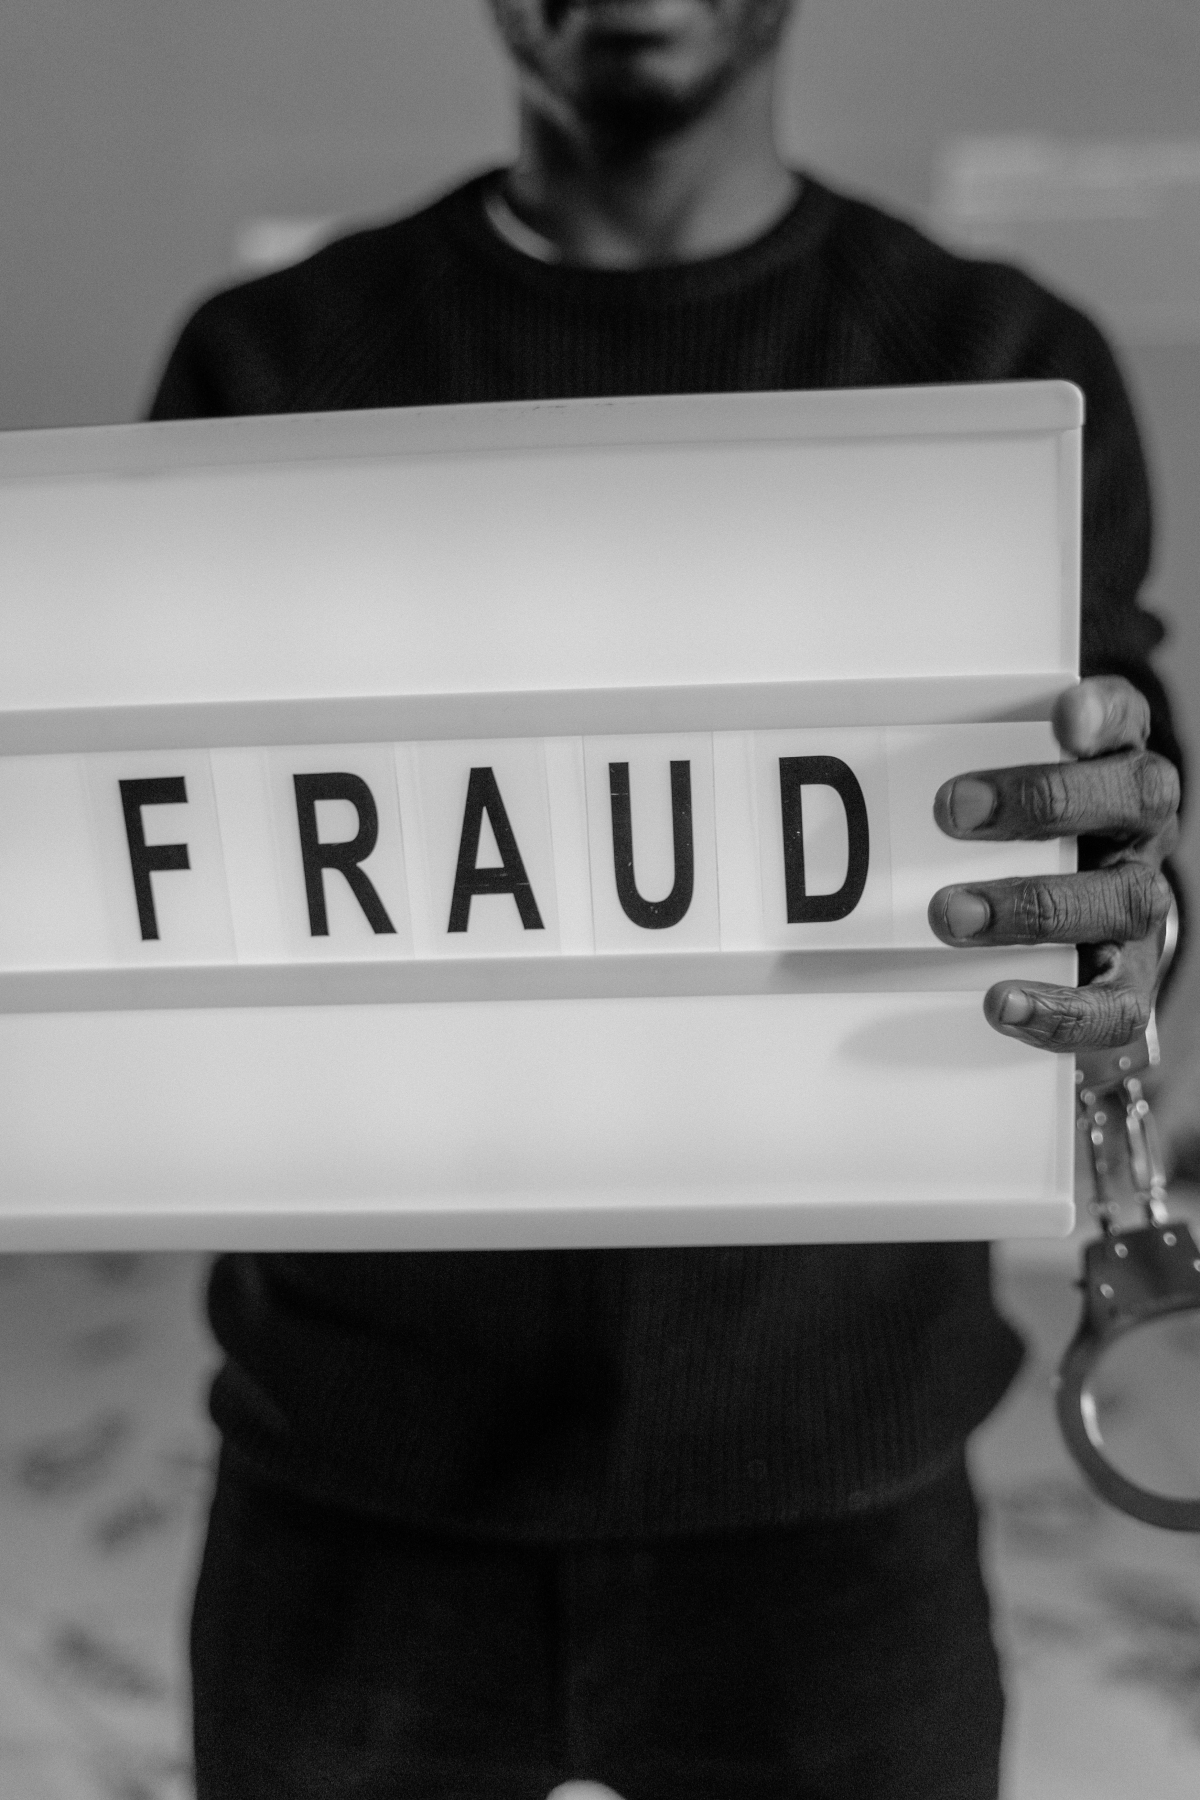 Input tax credit fraud: GST officials arrest a Delhi-based man over fraud allegations worth Rs 43 crore